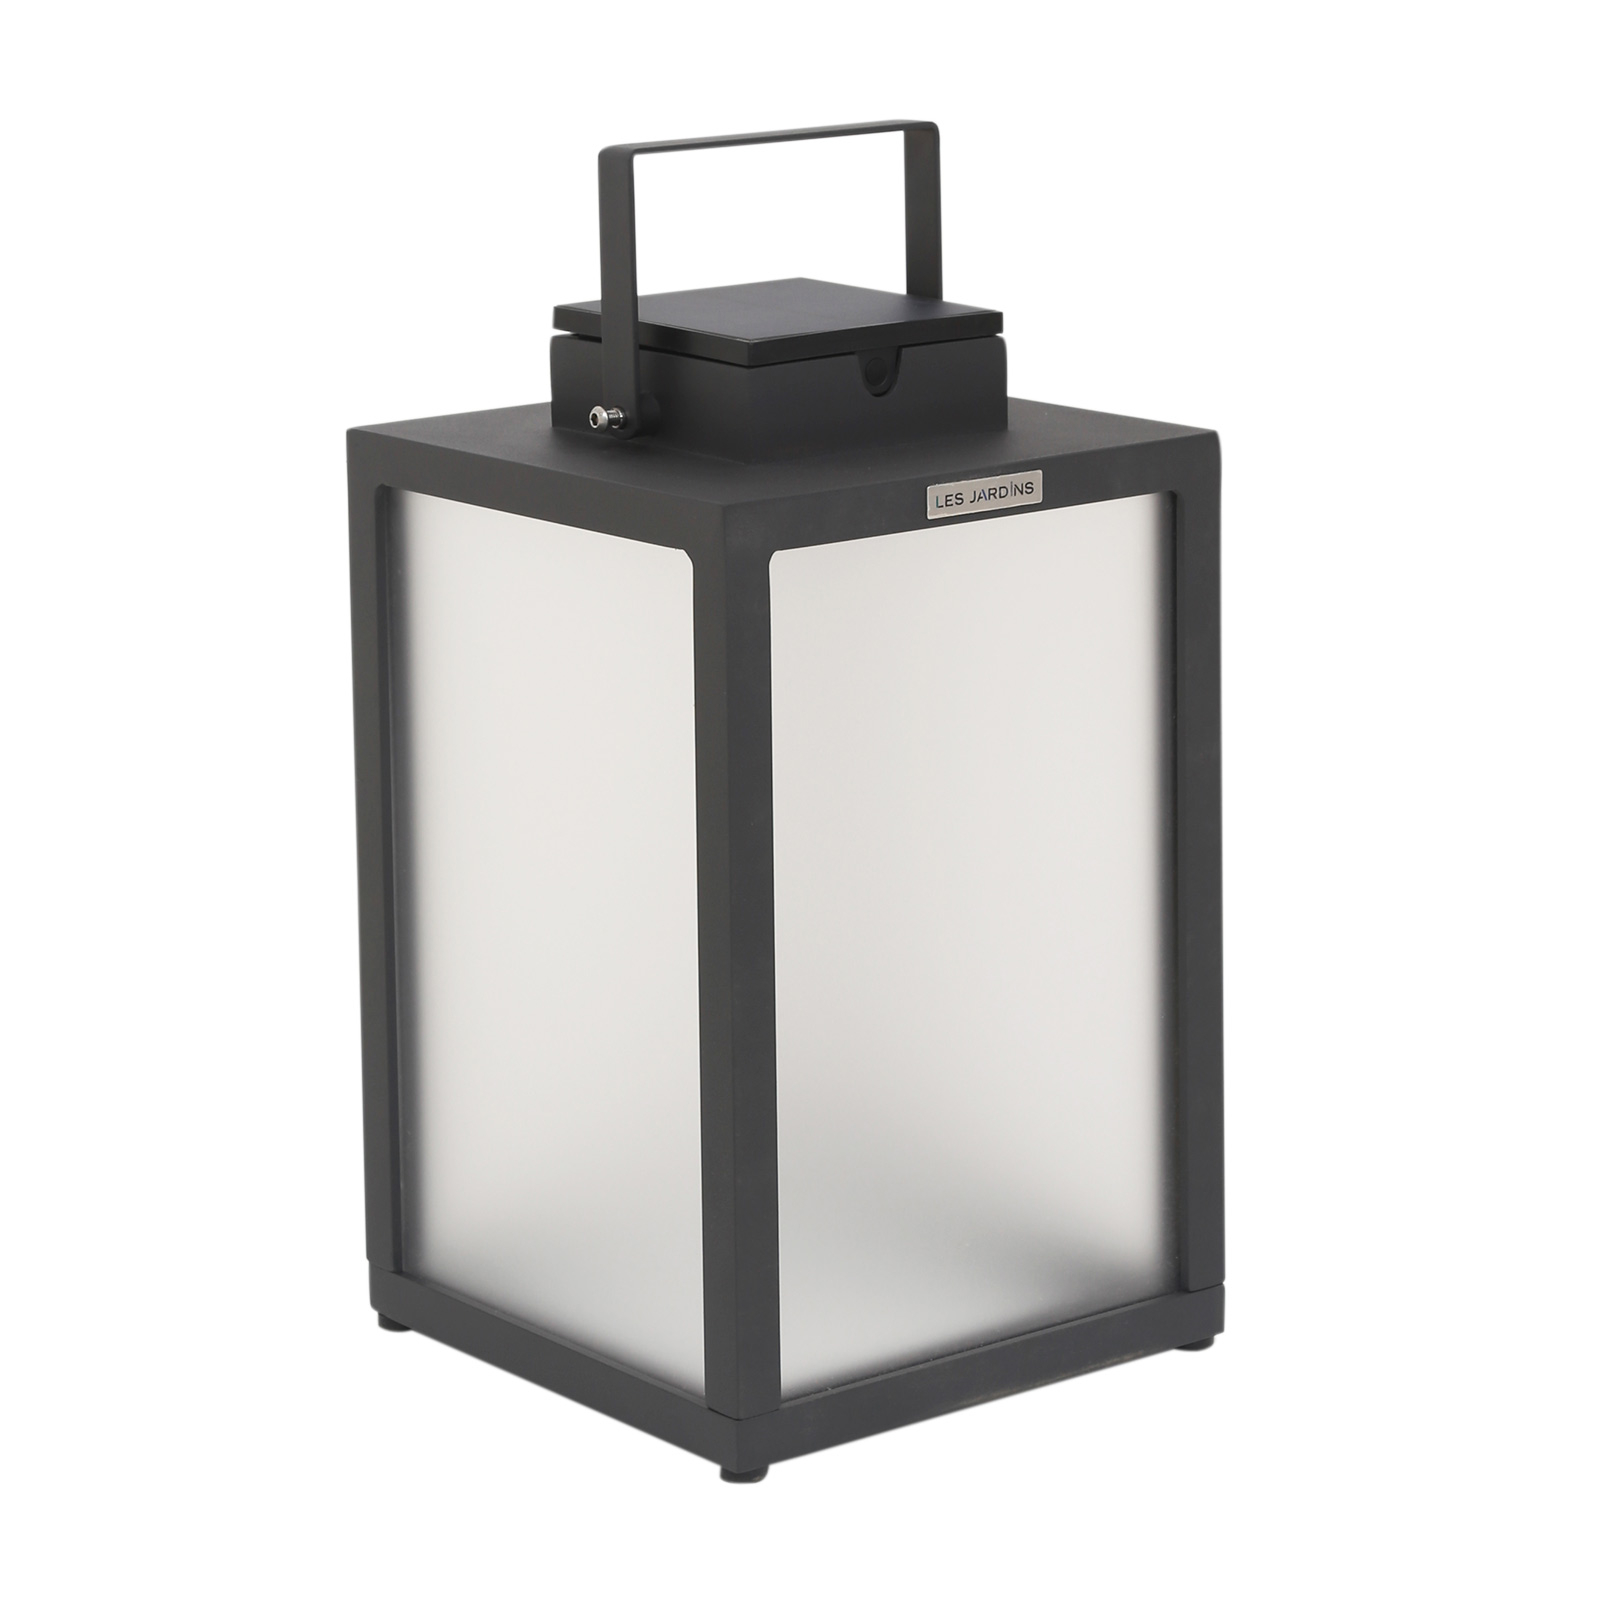 LED-Solarlaterne Tradition, Höhe 40 cm